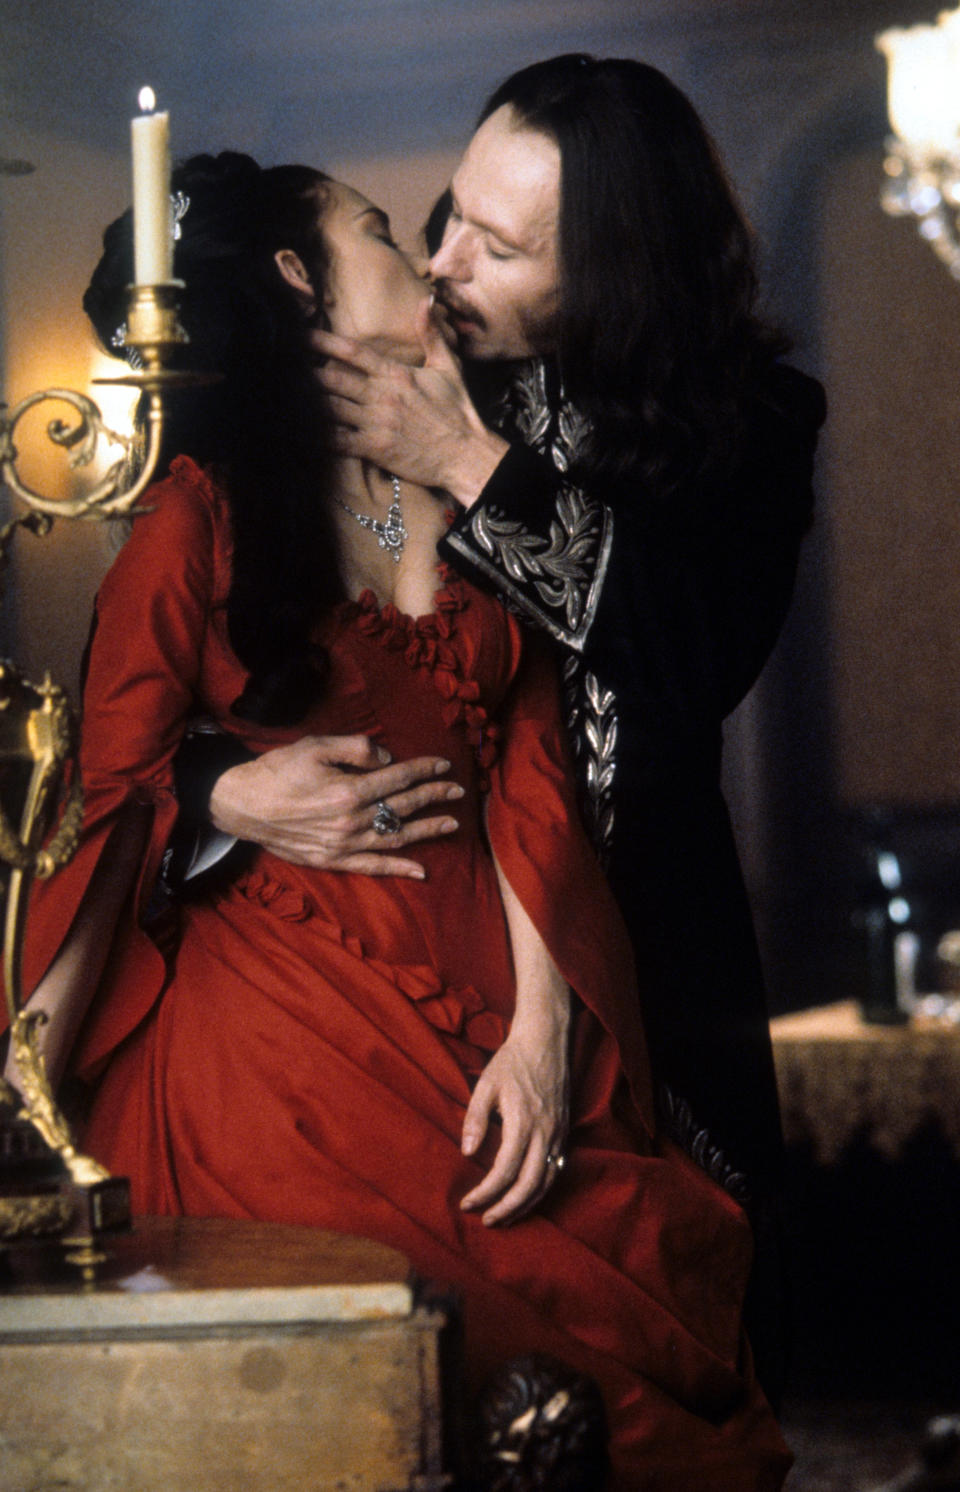 Winona Ryder and Gary Oldman kiss in a scene from the film 'Dracula', 1992. (Photo by Columbia Pictures/Getty Images)